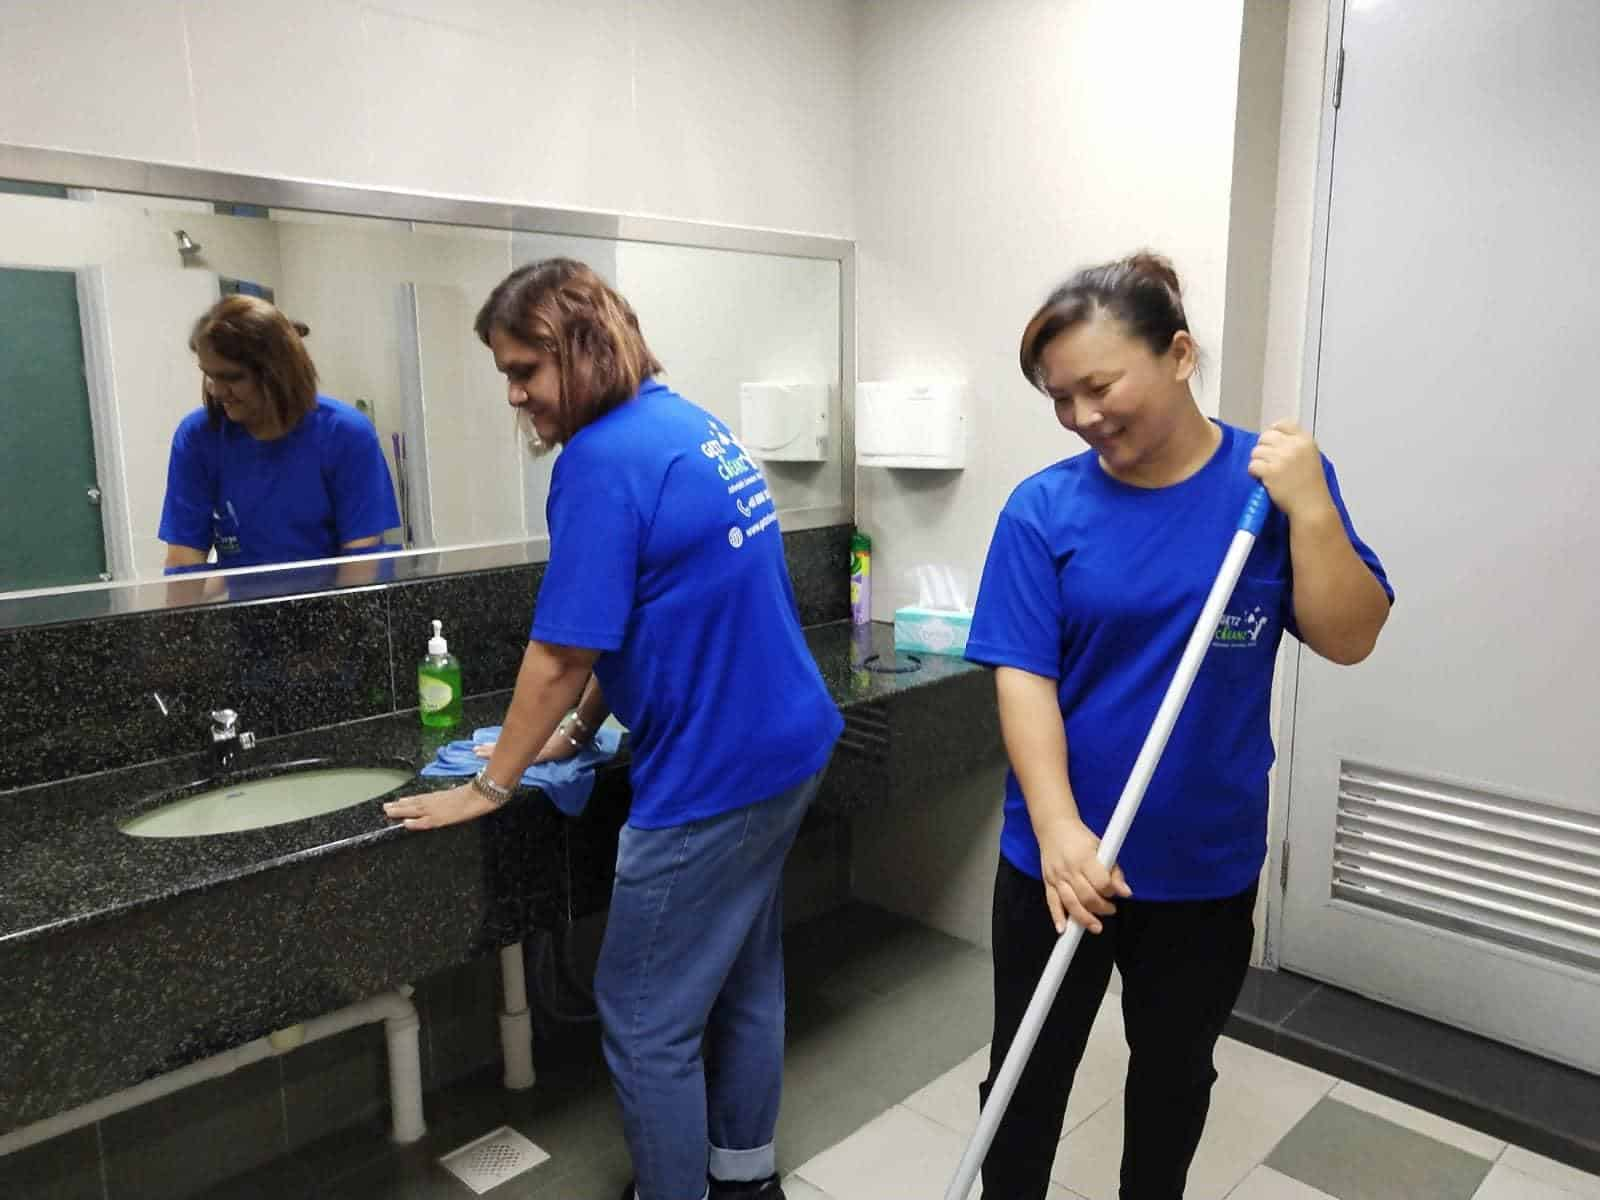 Getz Cleanz - Office/ Construction/ Dormitory Cleaning & Disinfection Services In Singapore, How much is a part-time cleaner in Singapore?, How much does it cost to have an office cleaned?, How much do office cleaners make per hour?, Part Time, Cheap Office Cleaning Services Company Singapore, How do I apply to clean in Singapore?